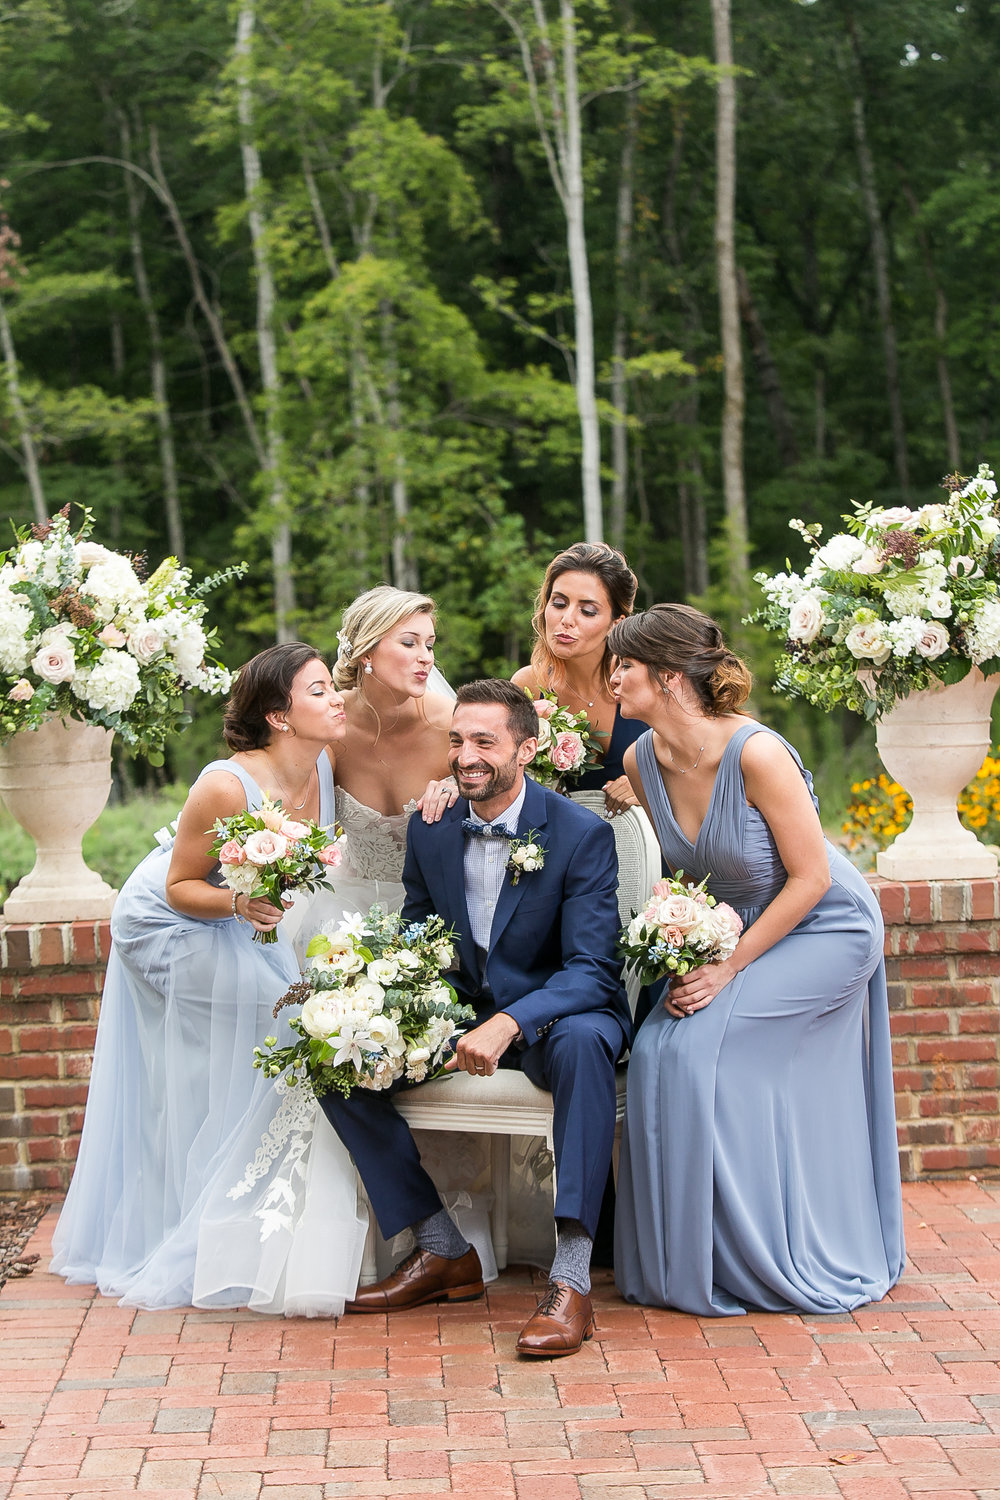 Southern Summer at Home Wedding Barn Chapel Hill NC bridal party